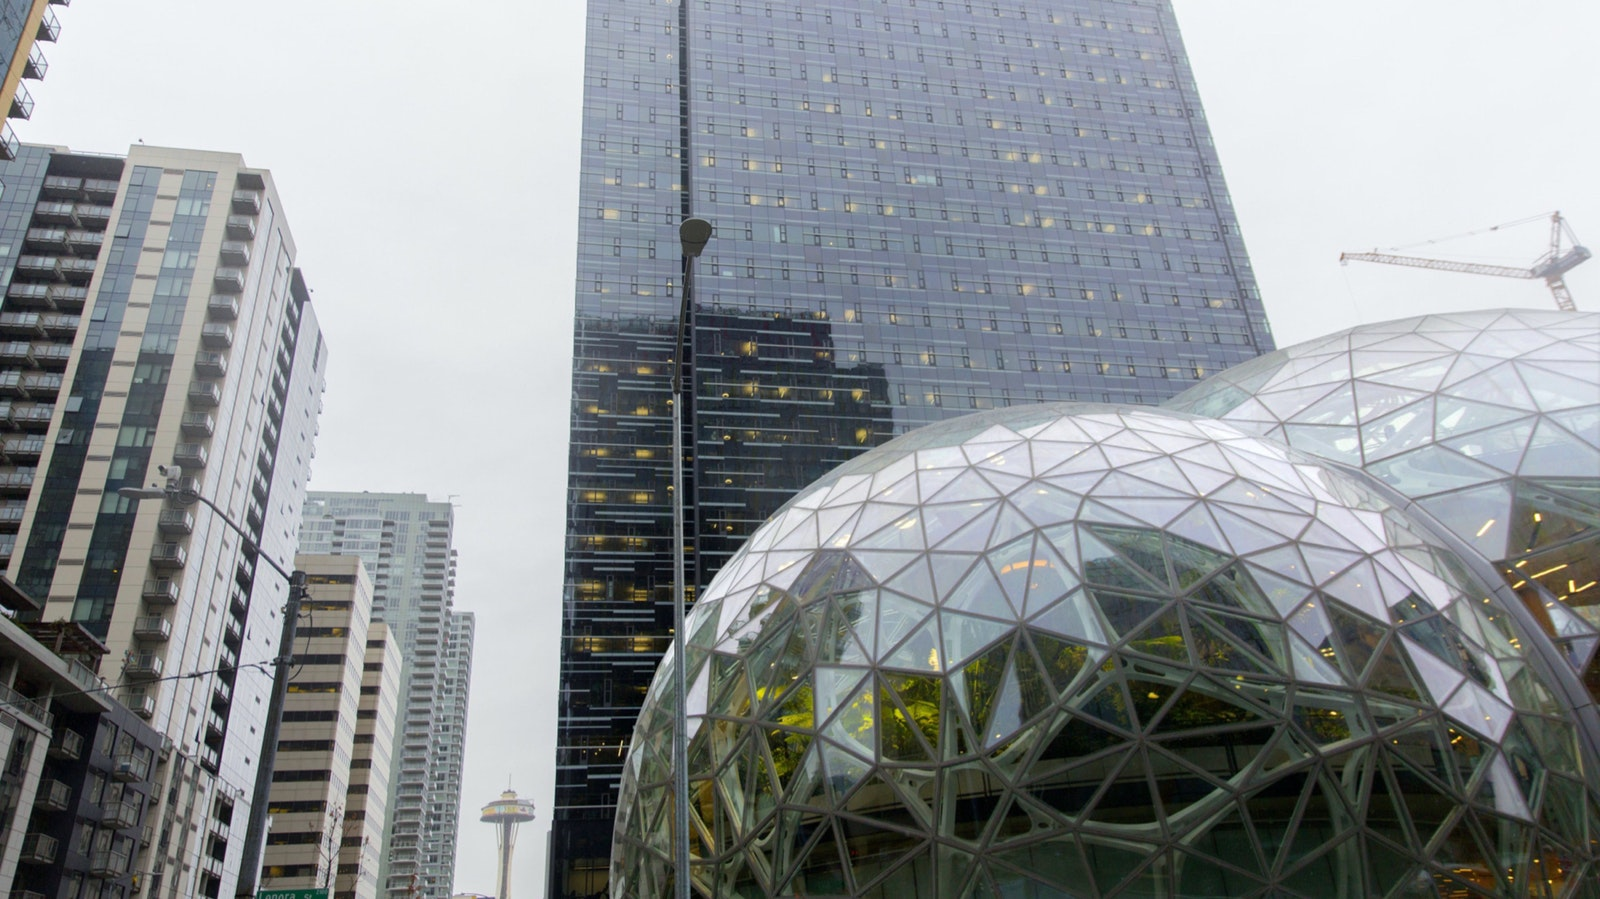 Amazon's Seattle headquarters. Photo by Bloomberg